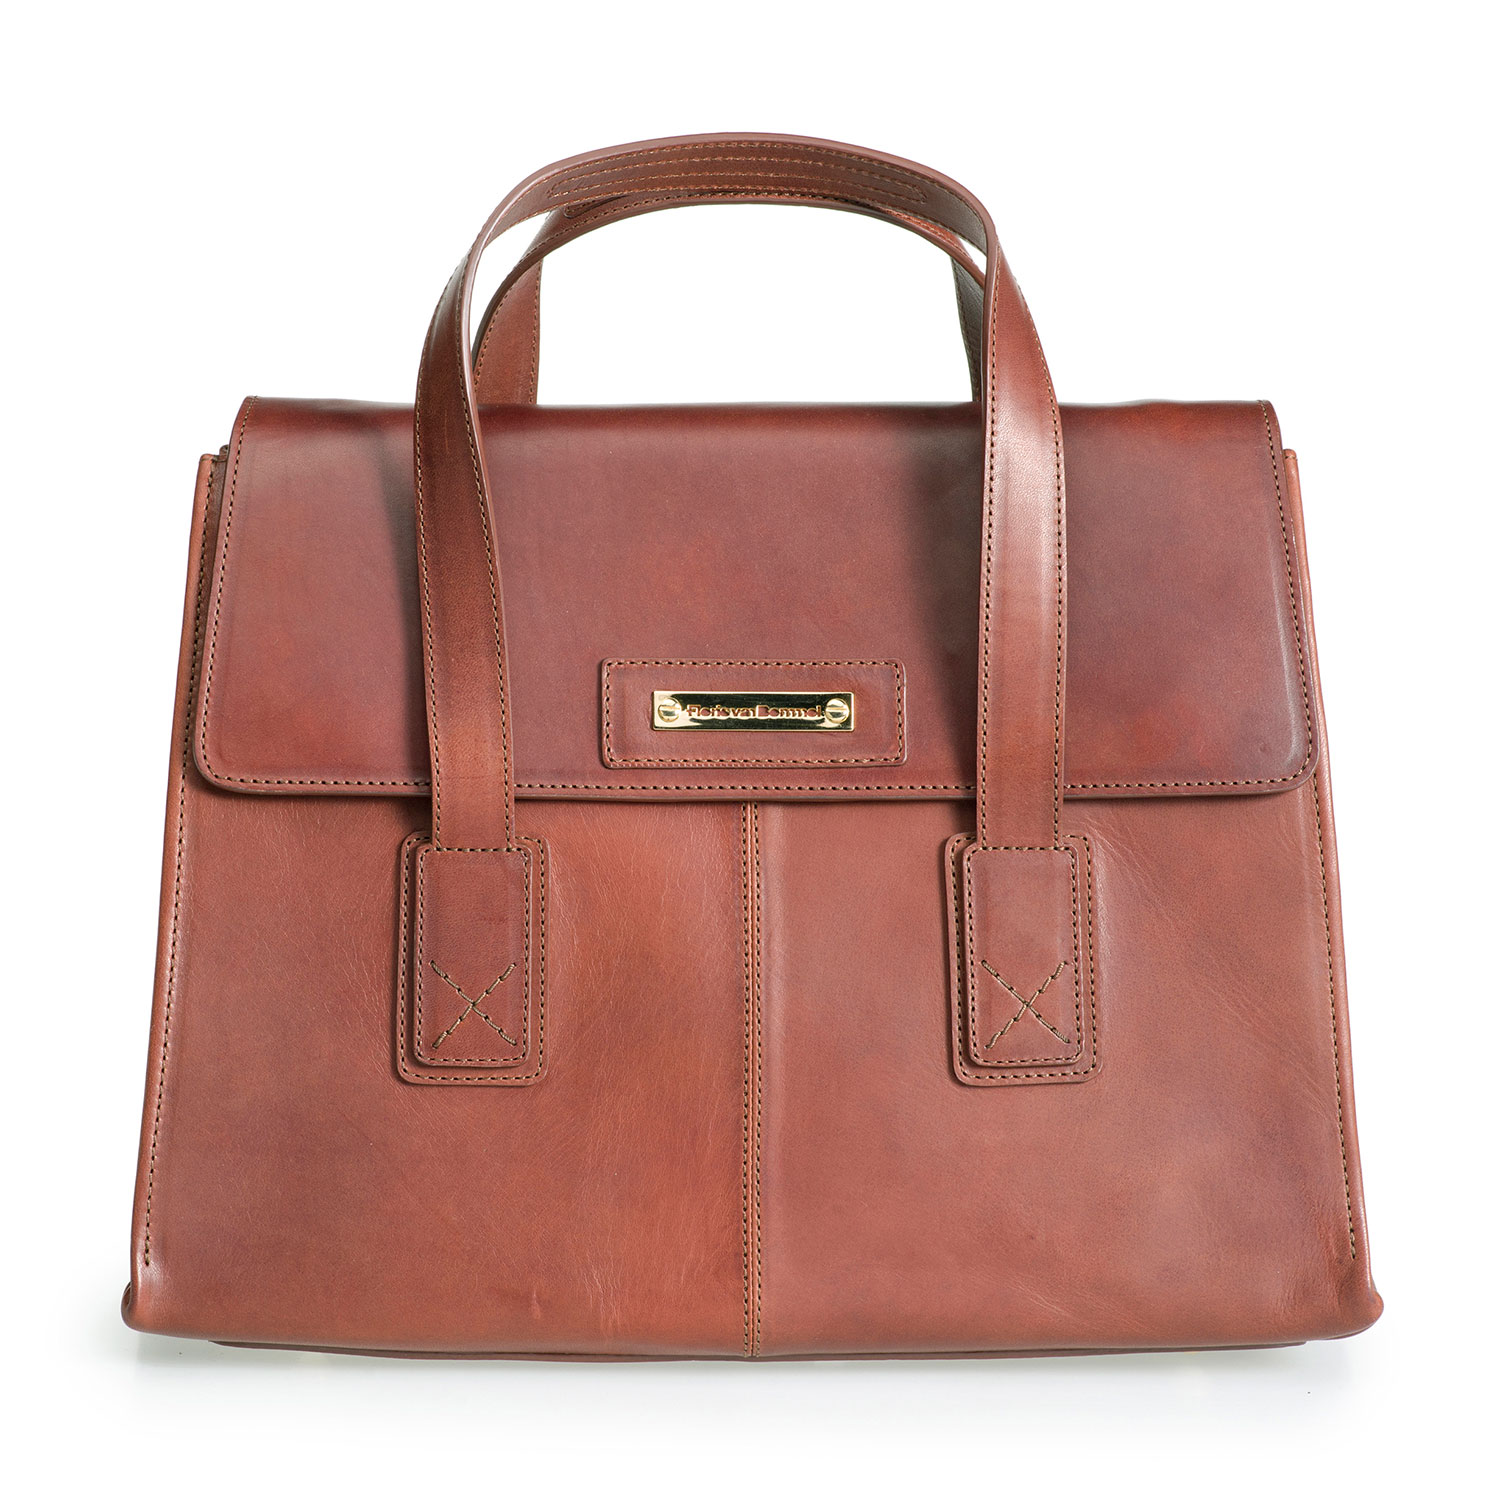 89009/01 - Brown leather business bag